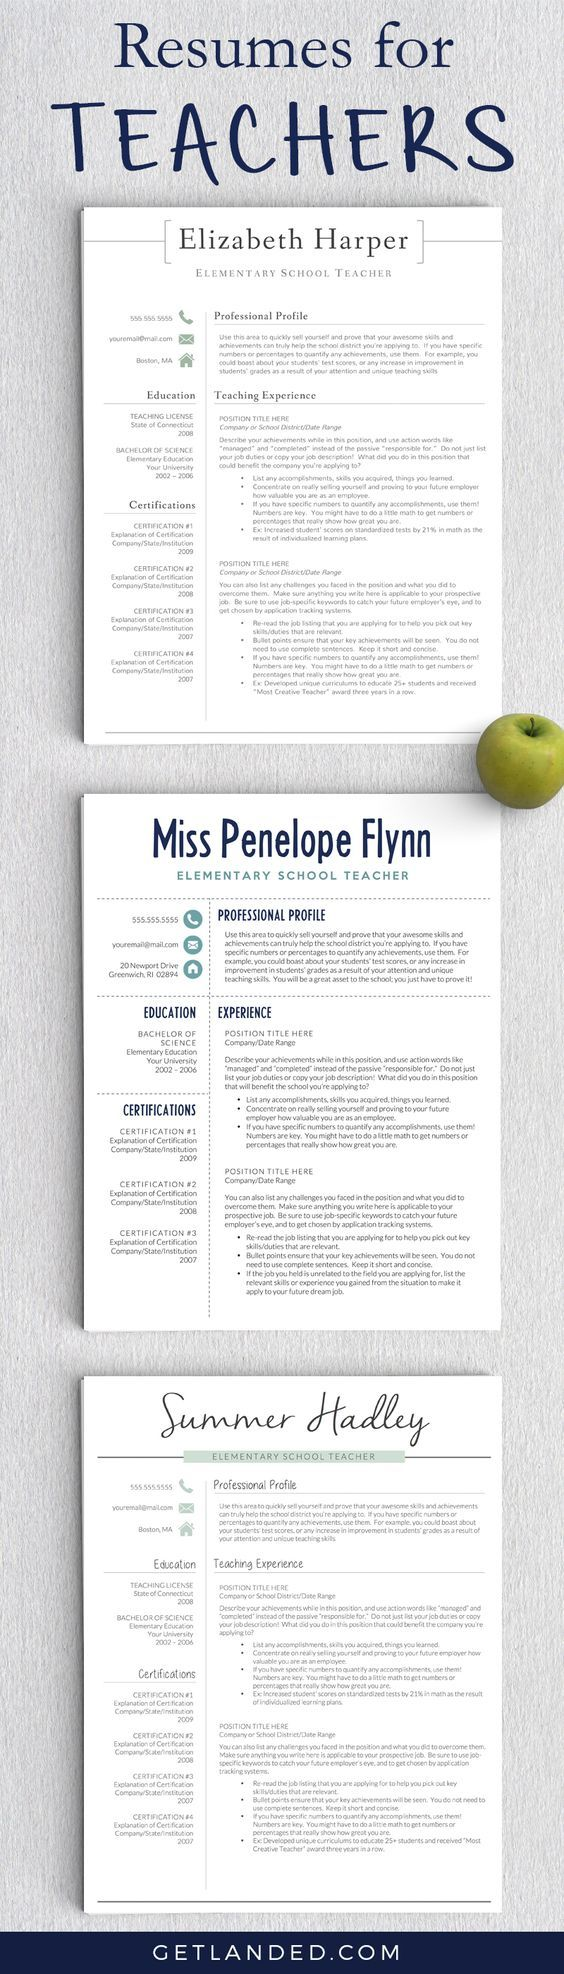 resumes designed for teachers and educators teacher resume teacher resume tips educator resume